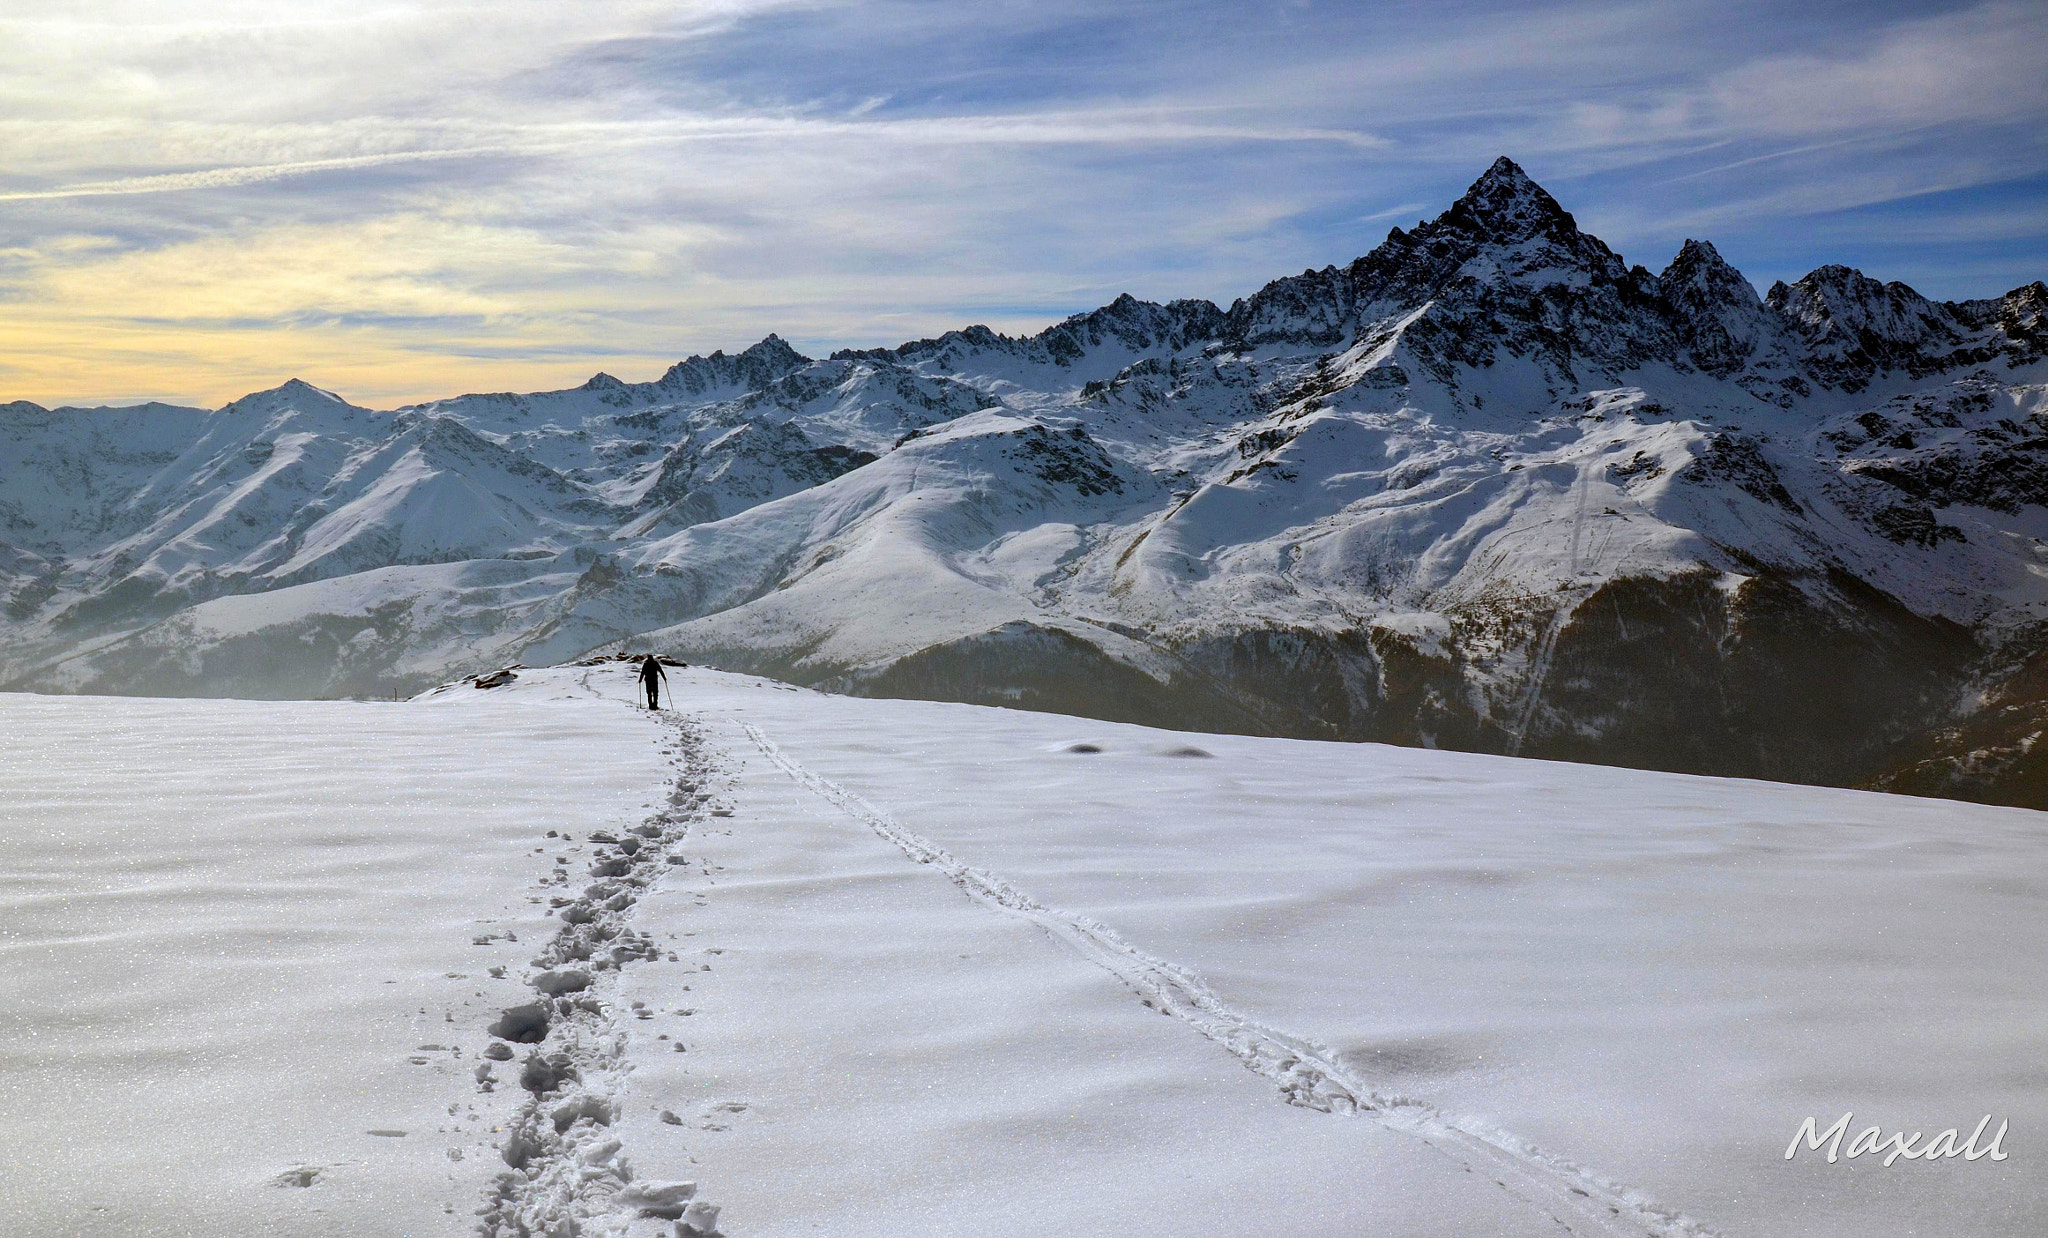 Photograph Walking on the snow by Massimo Alloi on 500px